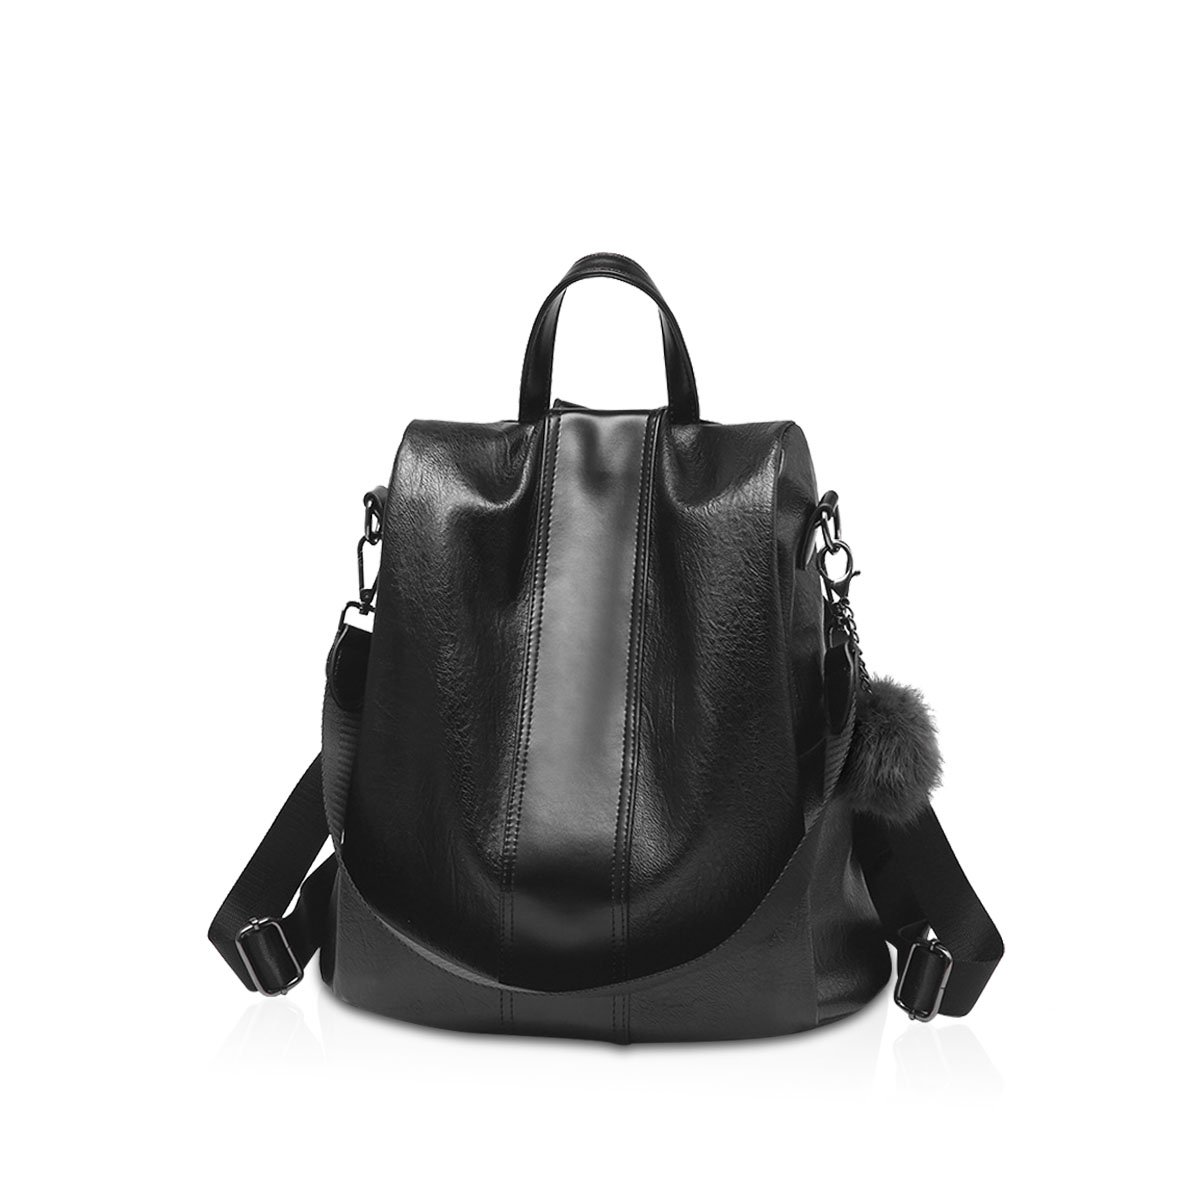 NICOLE & DORIS New Woman Shoulder Bag Personality Retro Soft Leather Backpack Casual Female Bag ND-VG001